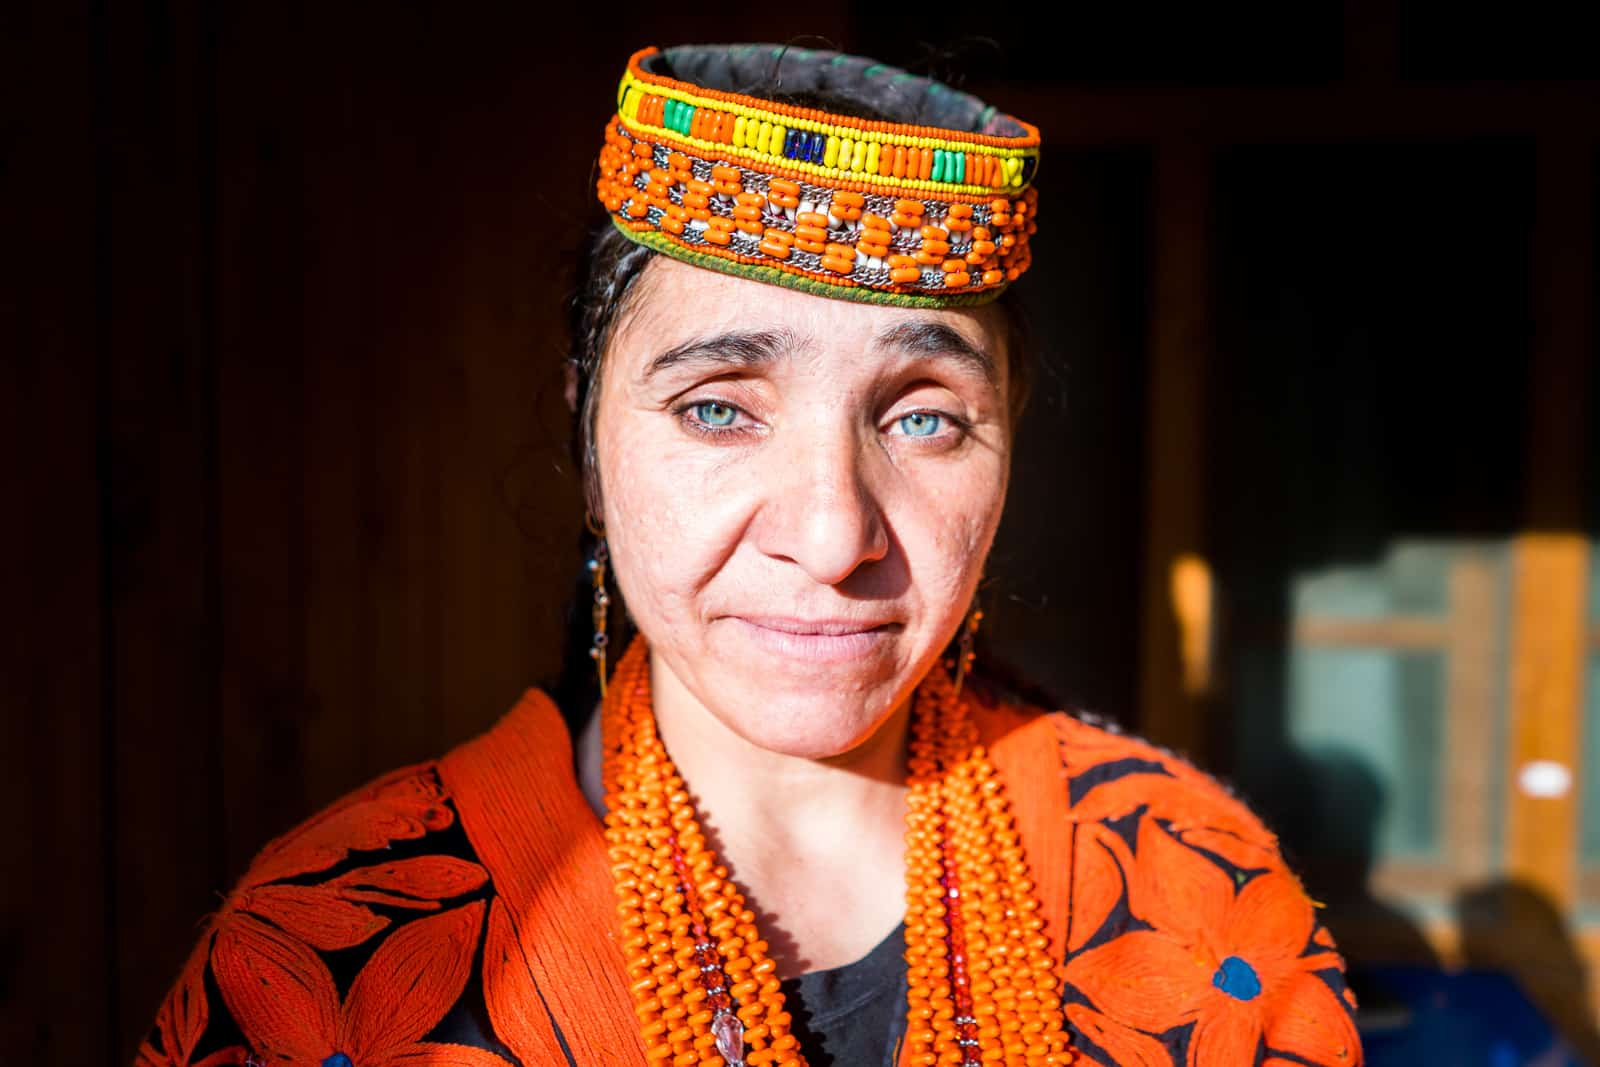 Kalasha woman with blue eyes in traditional outfit